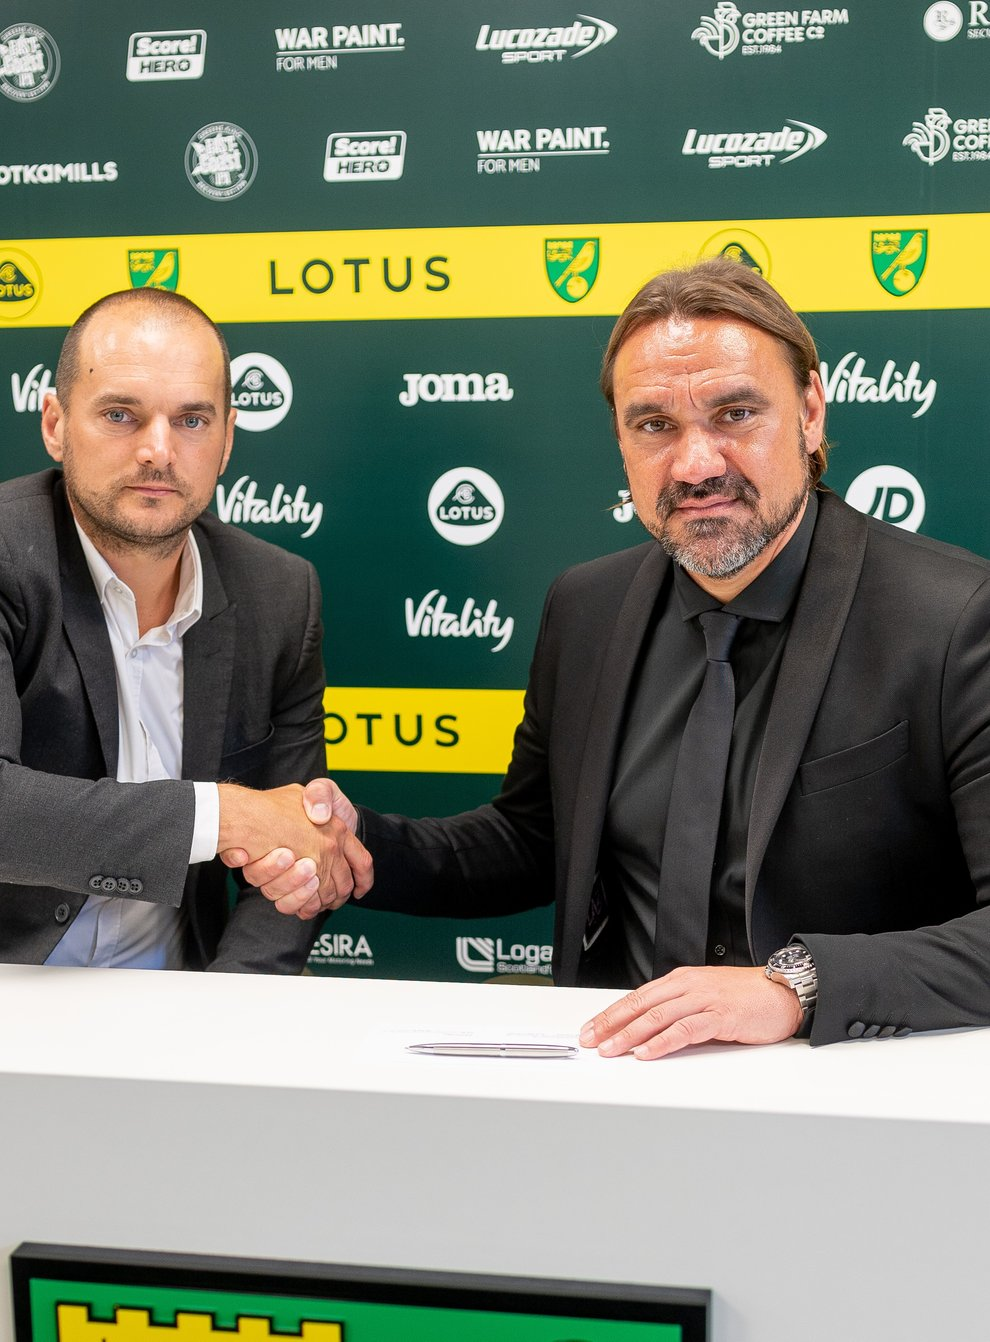 Norwich head coach Daniel Farke has signed a new contract at the club, pictured on right, alongside sporting director Stuart Webber (Matthew Usher/Norwich City FC/PA handout)